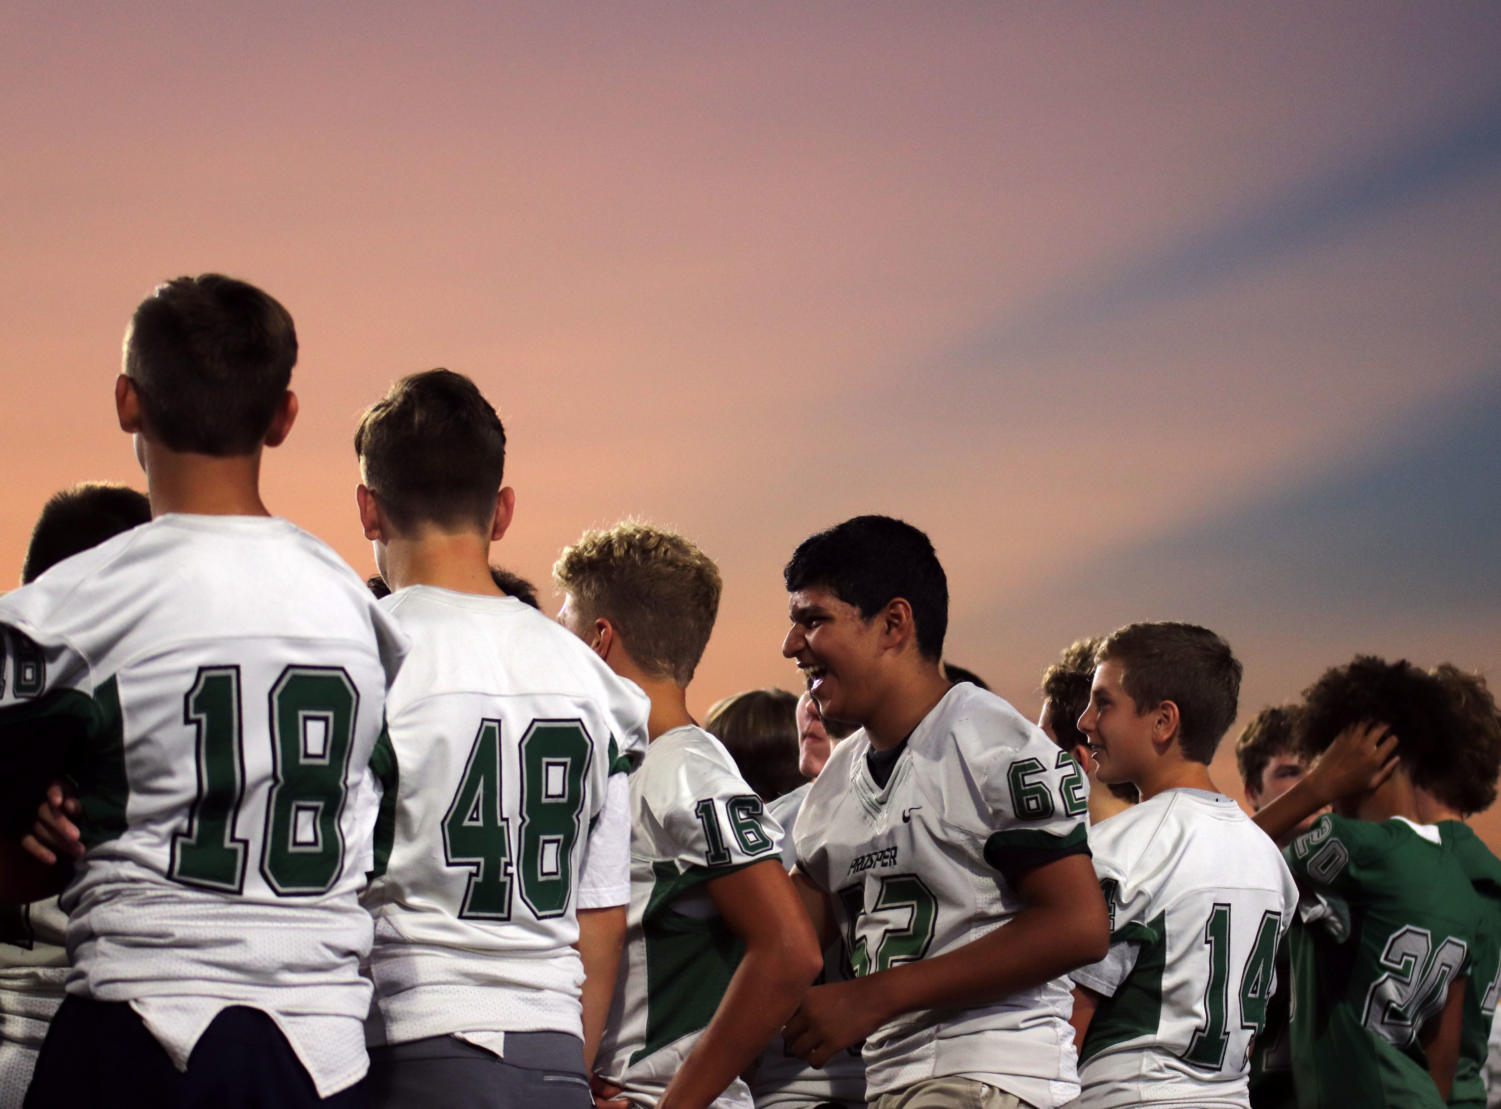 Freshman football players walk in their first Meet the Eagles. Fall sports were formally introduced to the public under the lights. The new PISD stadium in partnership with Children's Health was also inaugurated. The first Varsity game will be at the stadium Aug. 30.